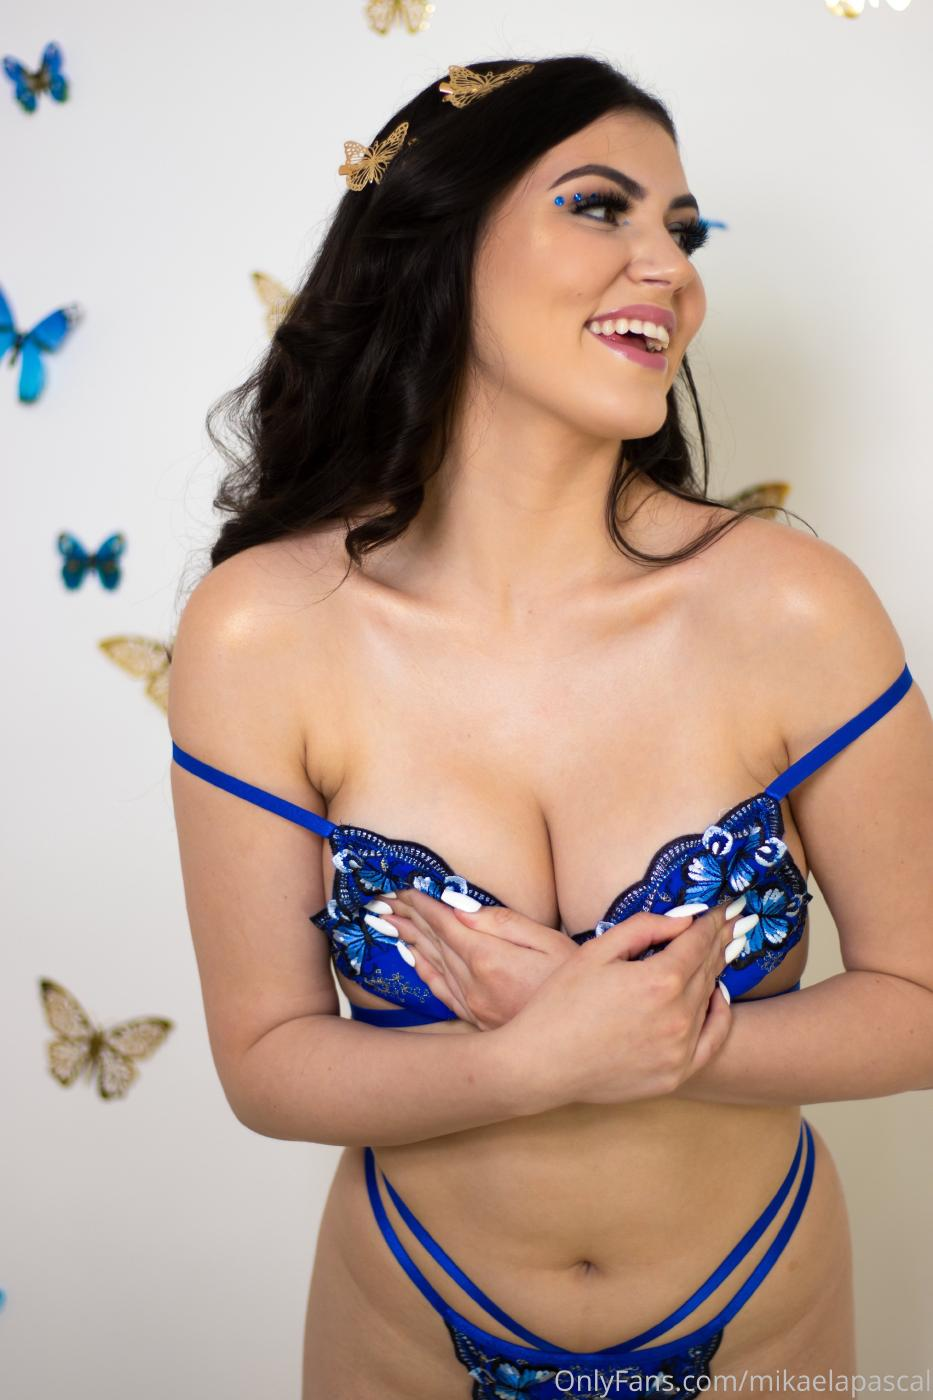 Mikaela Pascal Butterfly Onlyfans Set Leaked0006